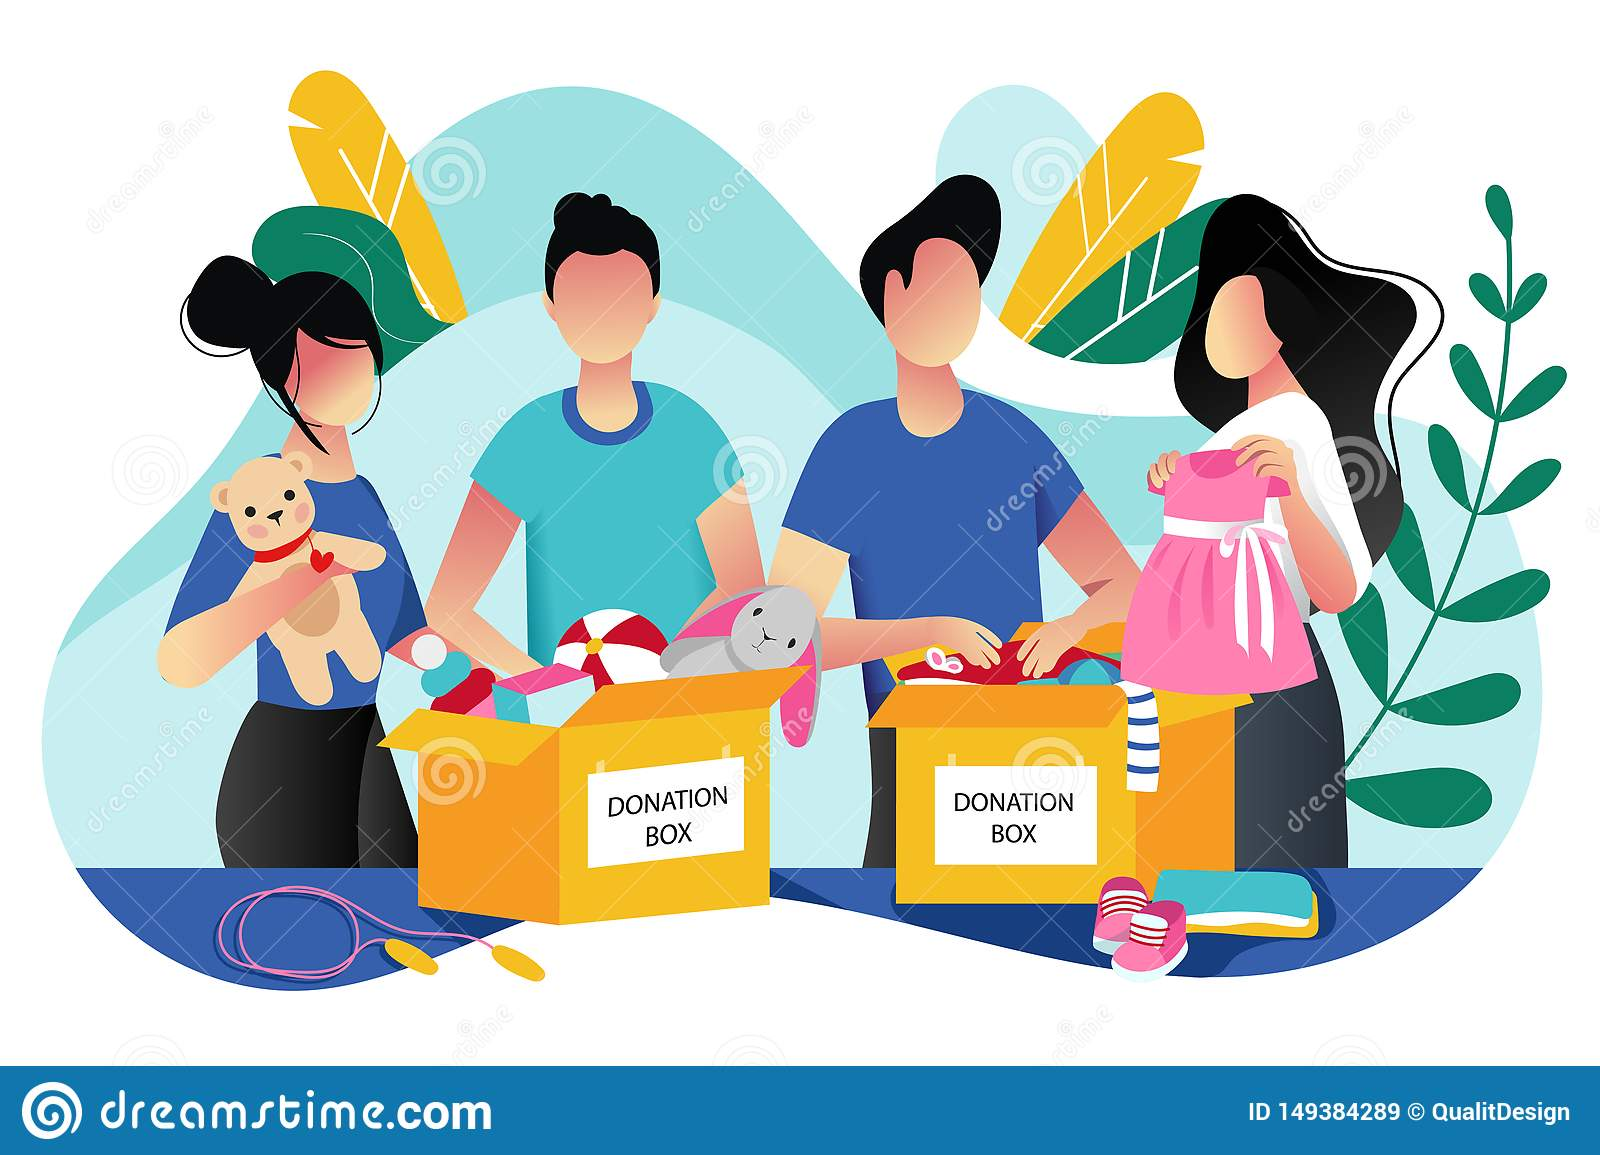 Toys and kids clothes donation. Vector trendy flat cartoon illustration. Social care, volunteering and charity concept